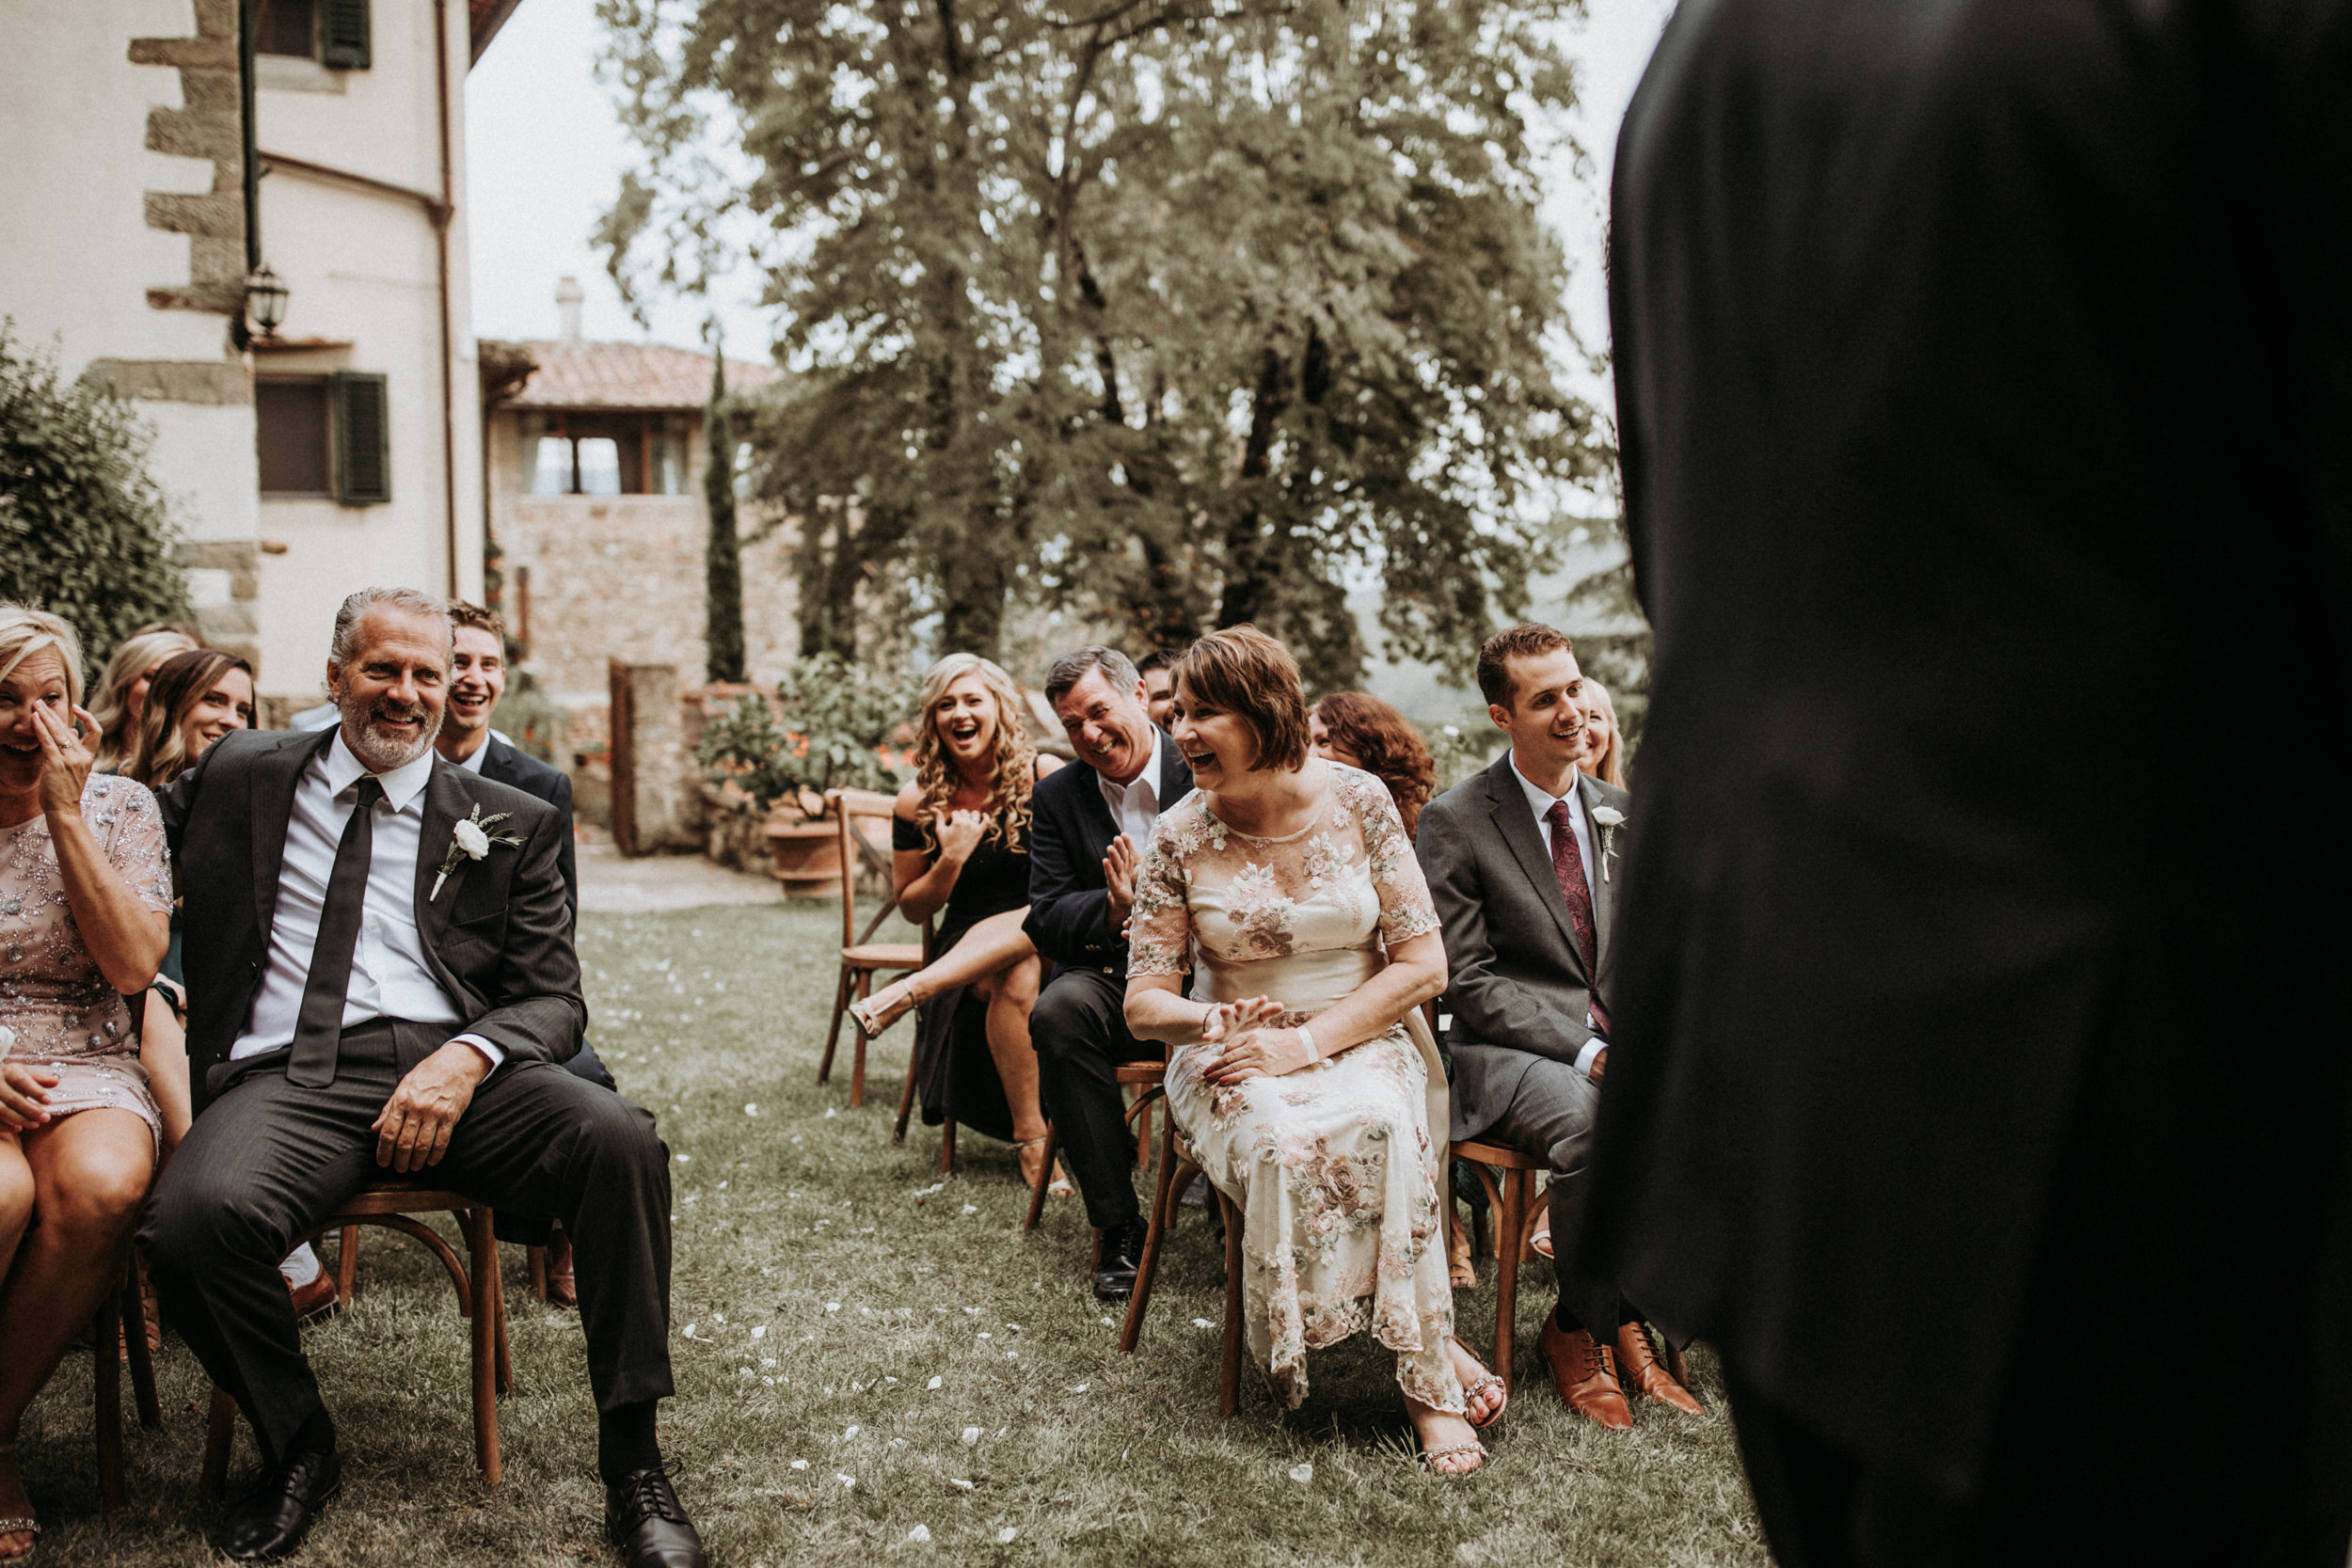 dm_photography_KW_Tuscanyweddingday_240